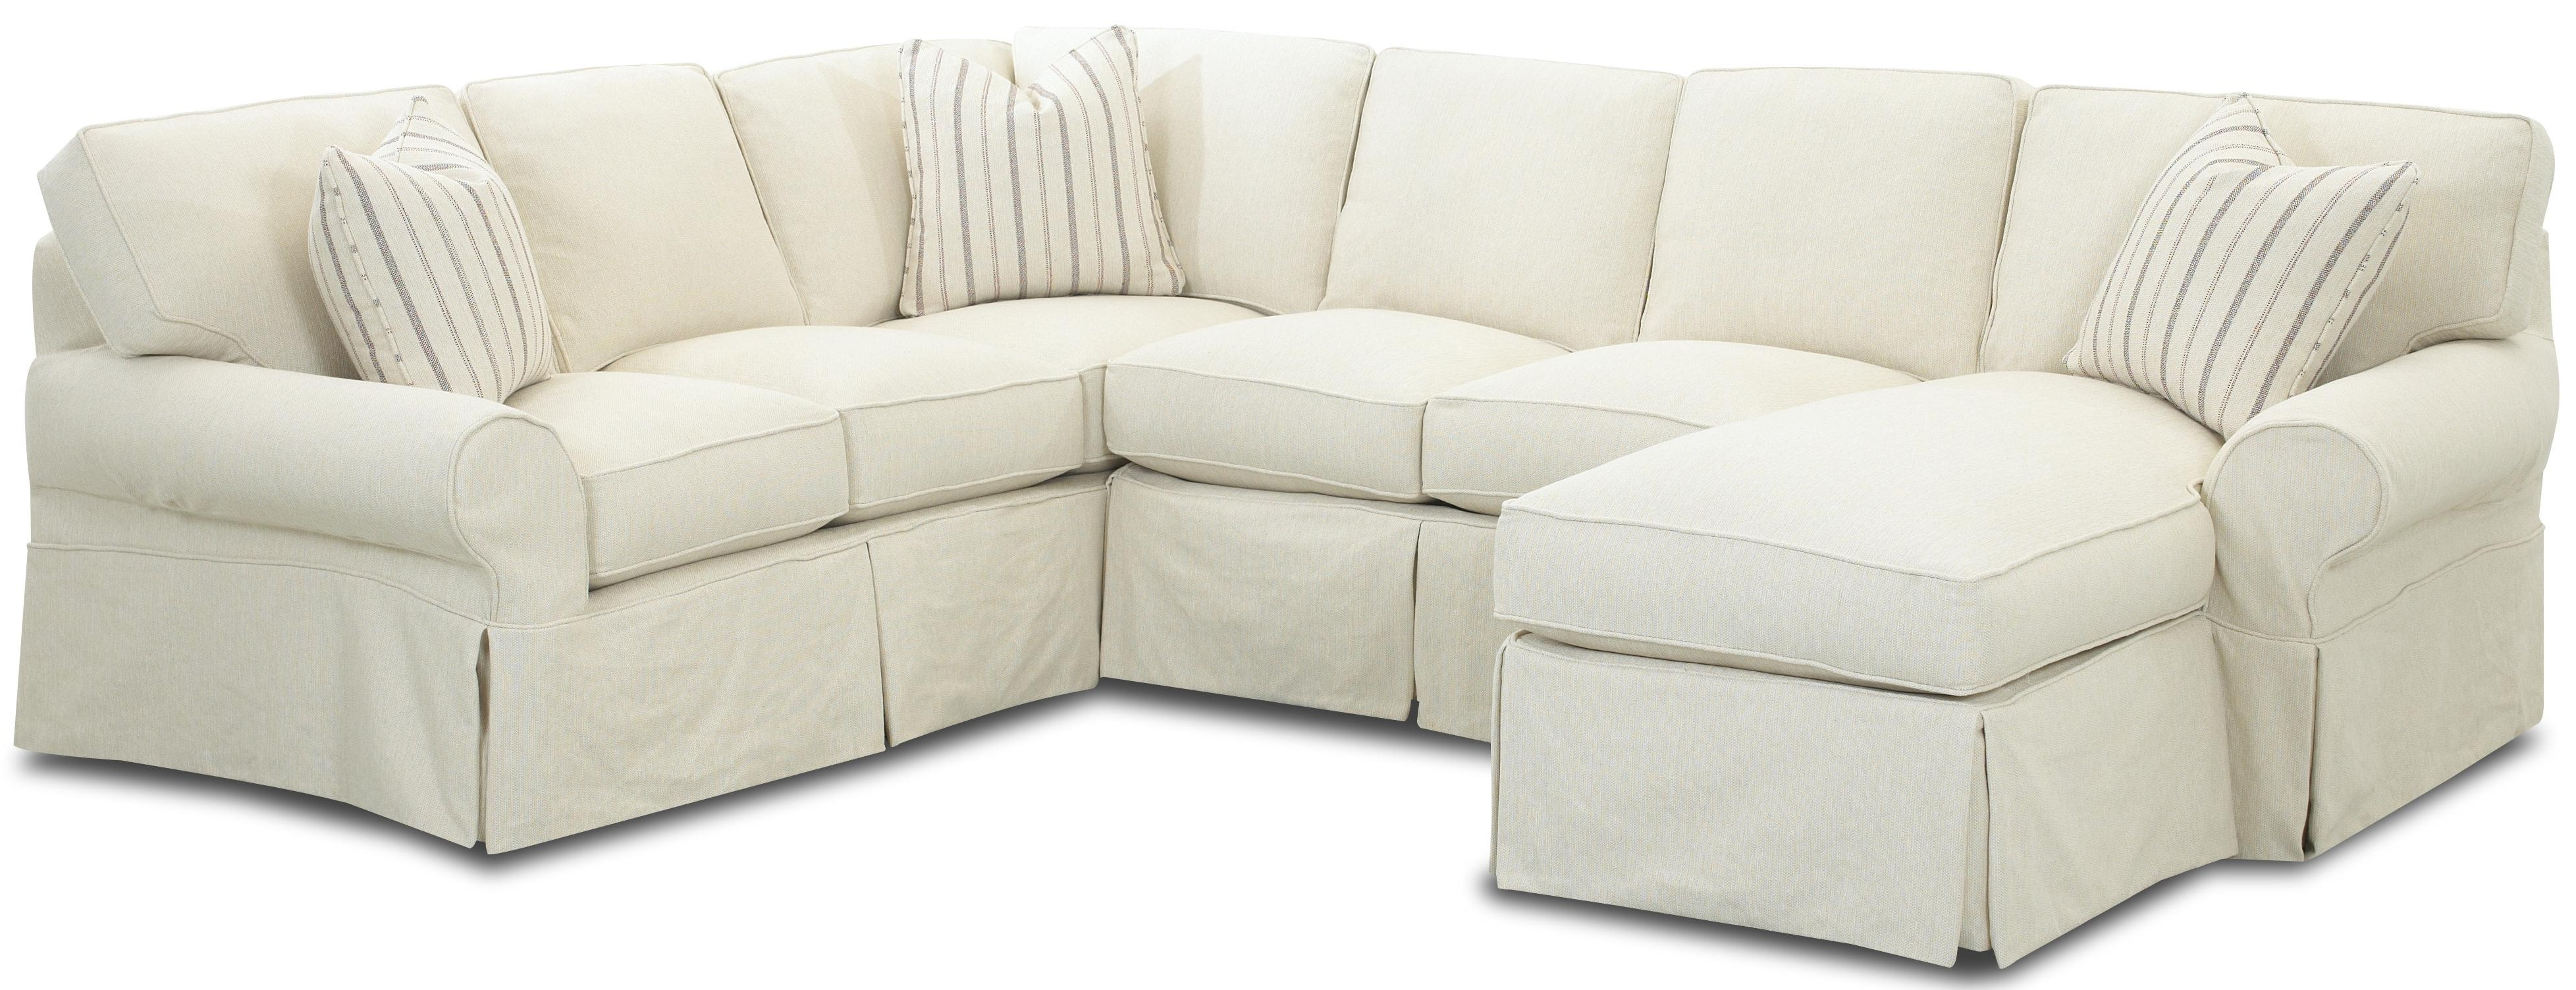 Most Popular Best Slipcover Sectional Sofa With Chaise 75 In Office Sofa Ideas Inside Chaise Slipcovers (View 8 of 15)